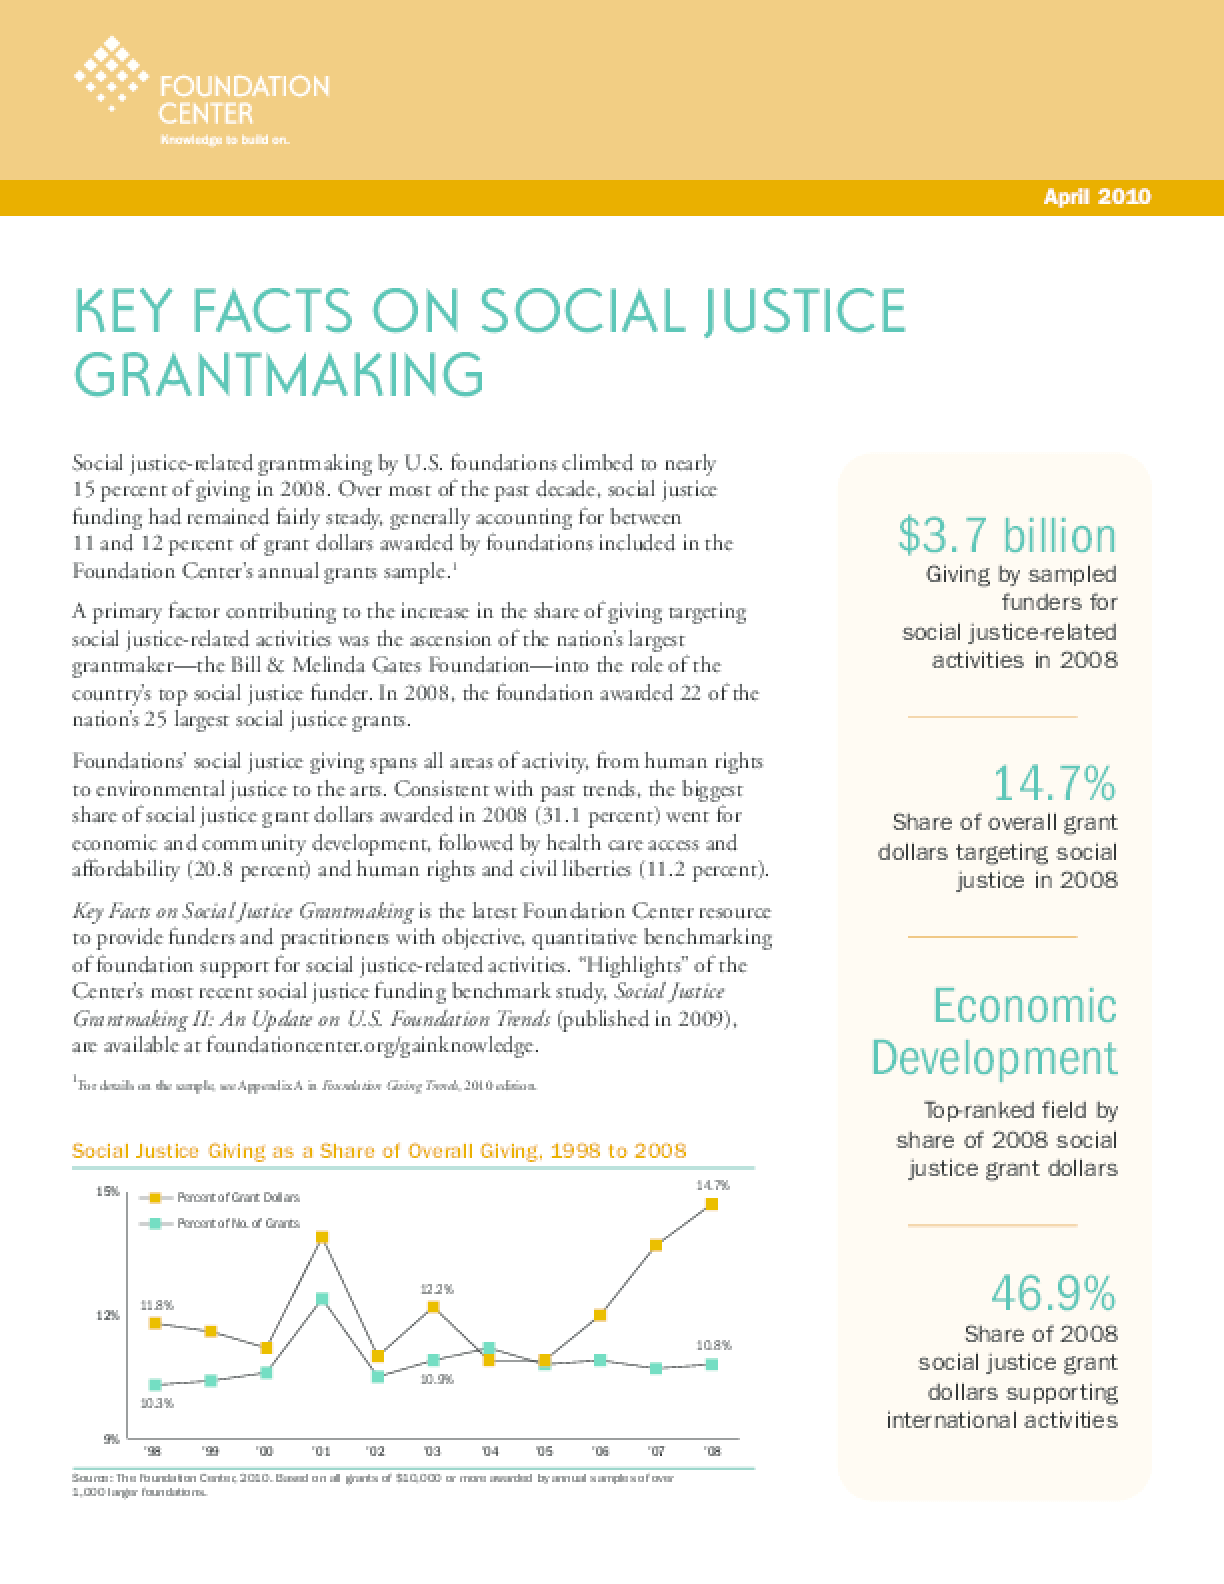 Key Facts on Social Justice Grantmaking